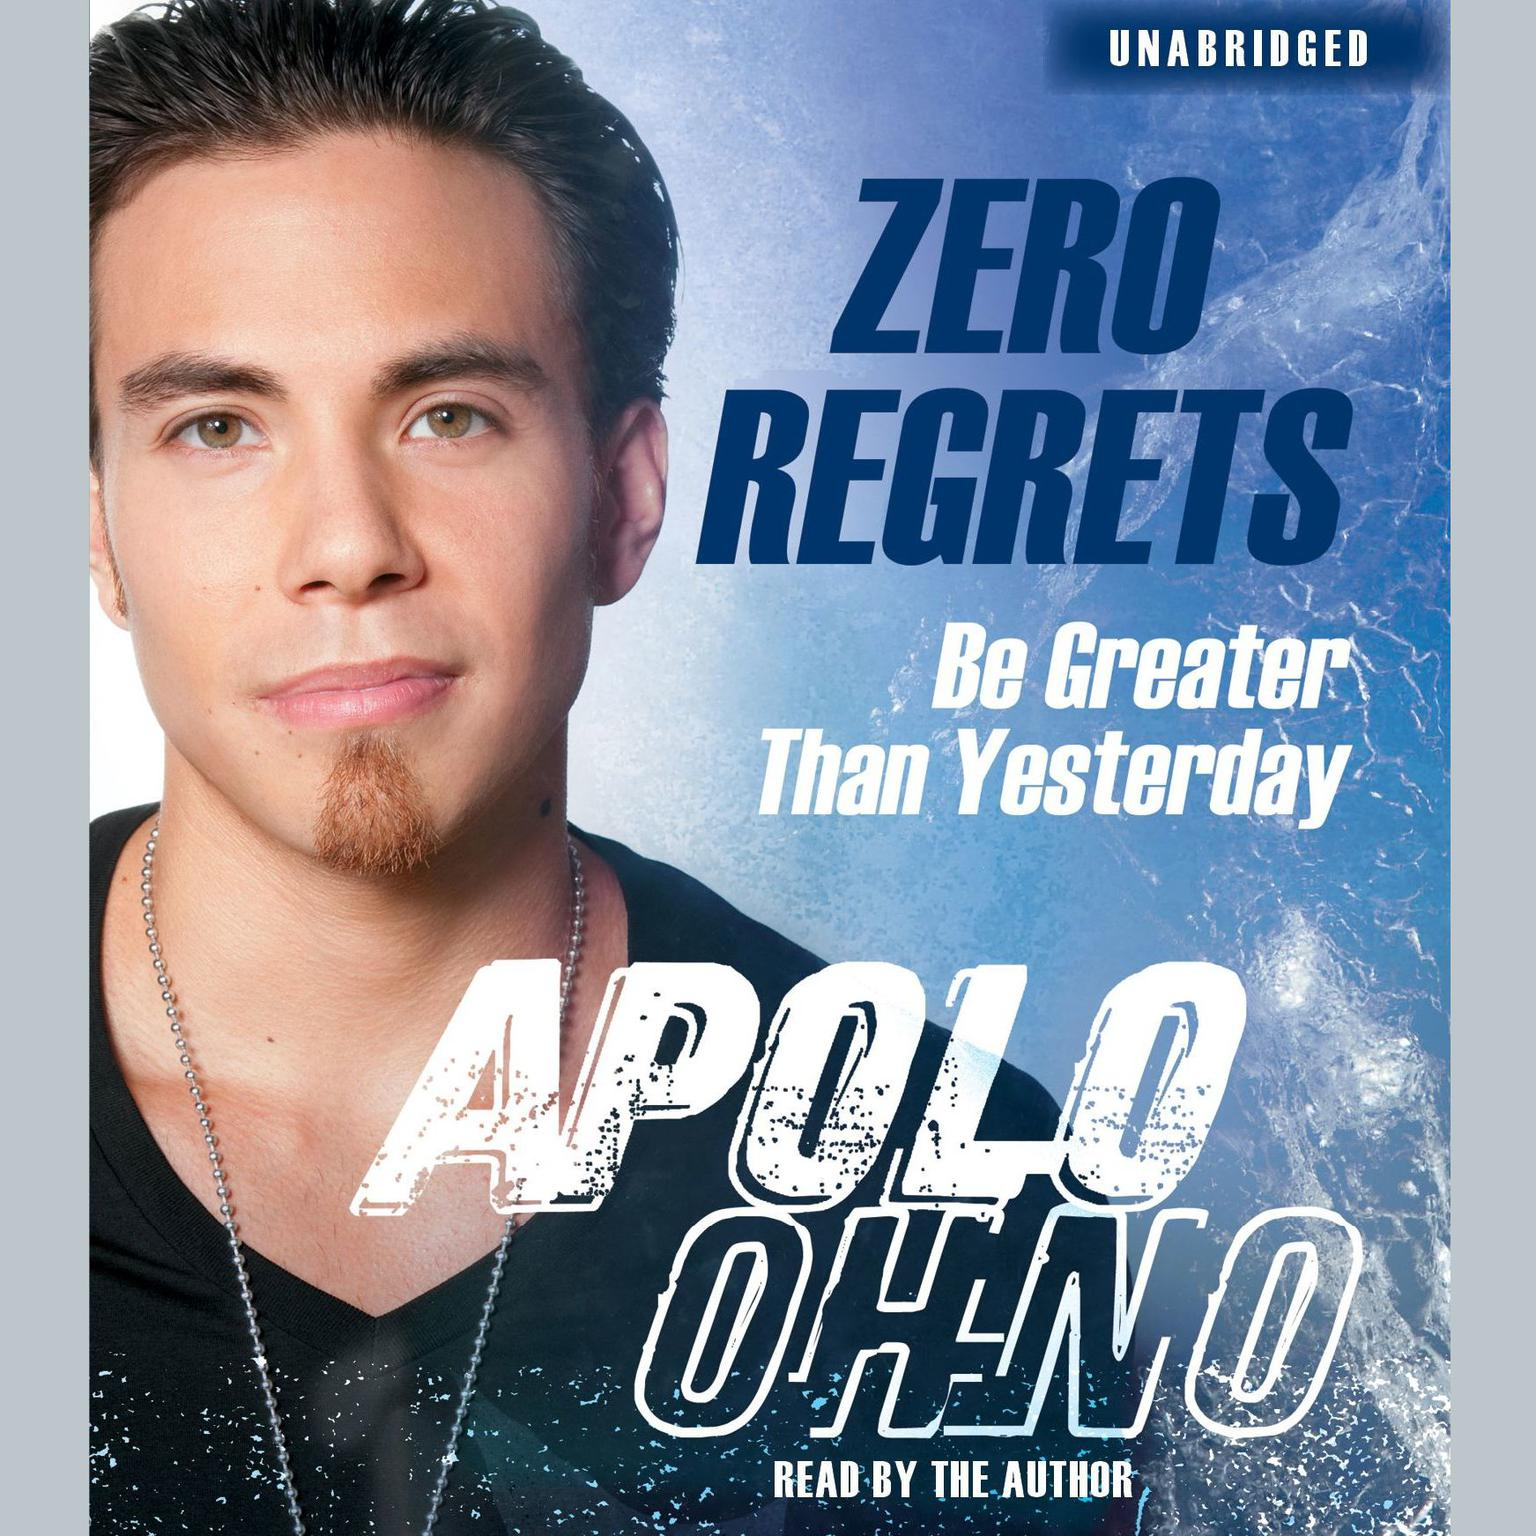 Printable Zero Regrets: Be Greater Than Yesterday Audiobook Cover Art